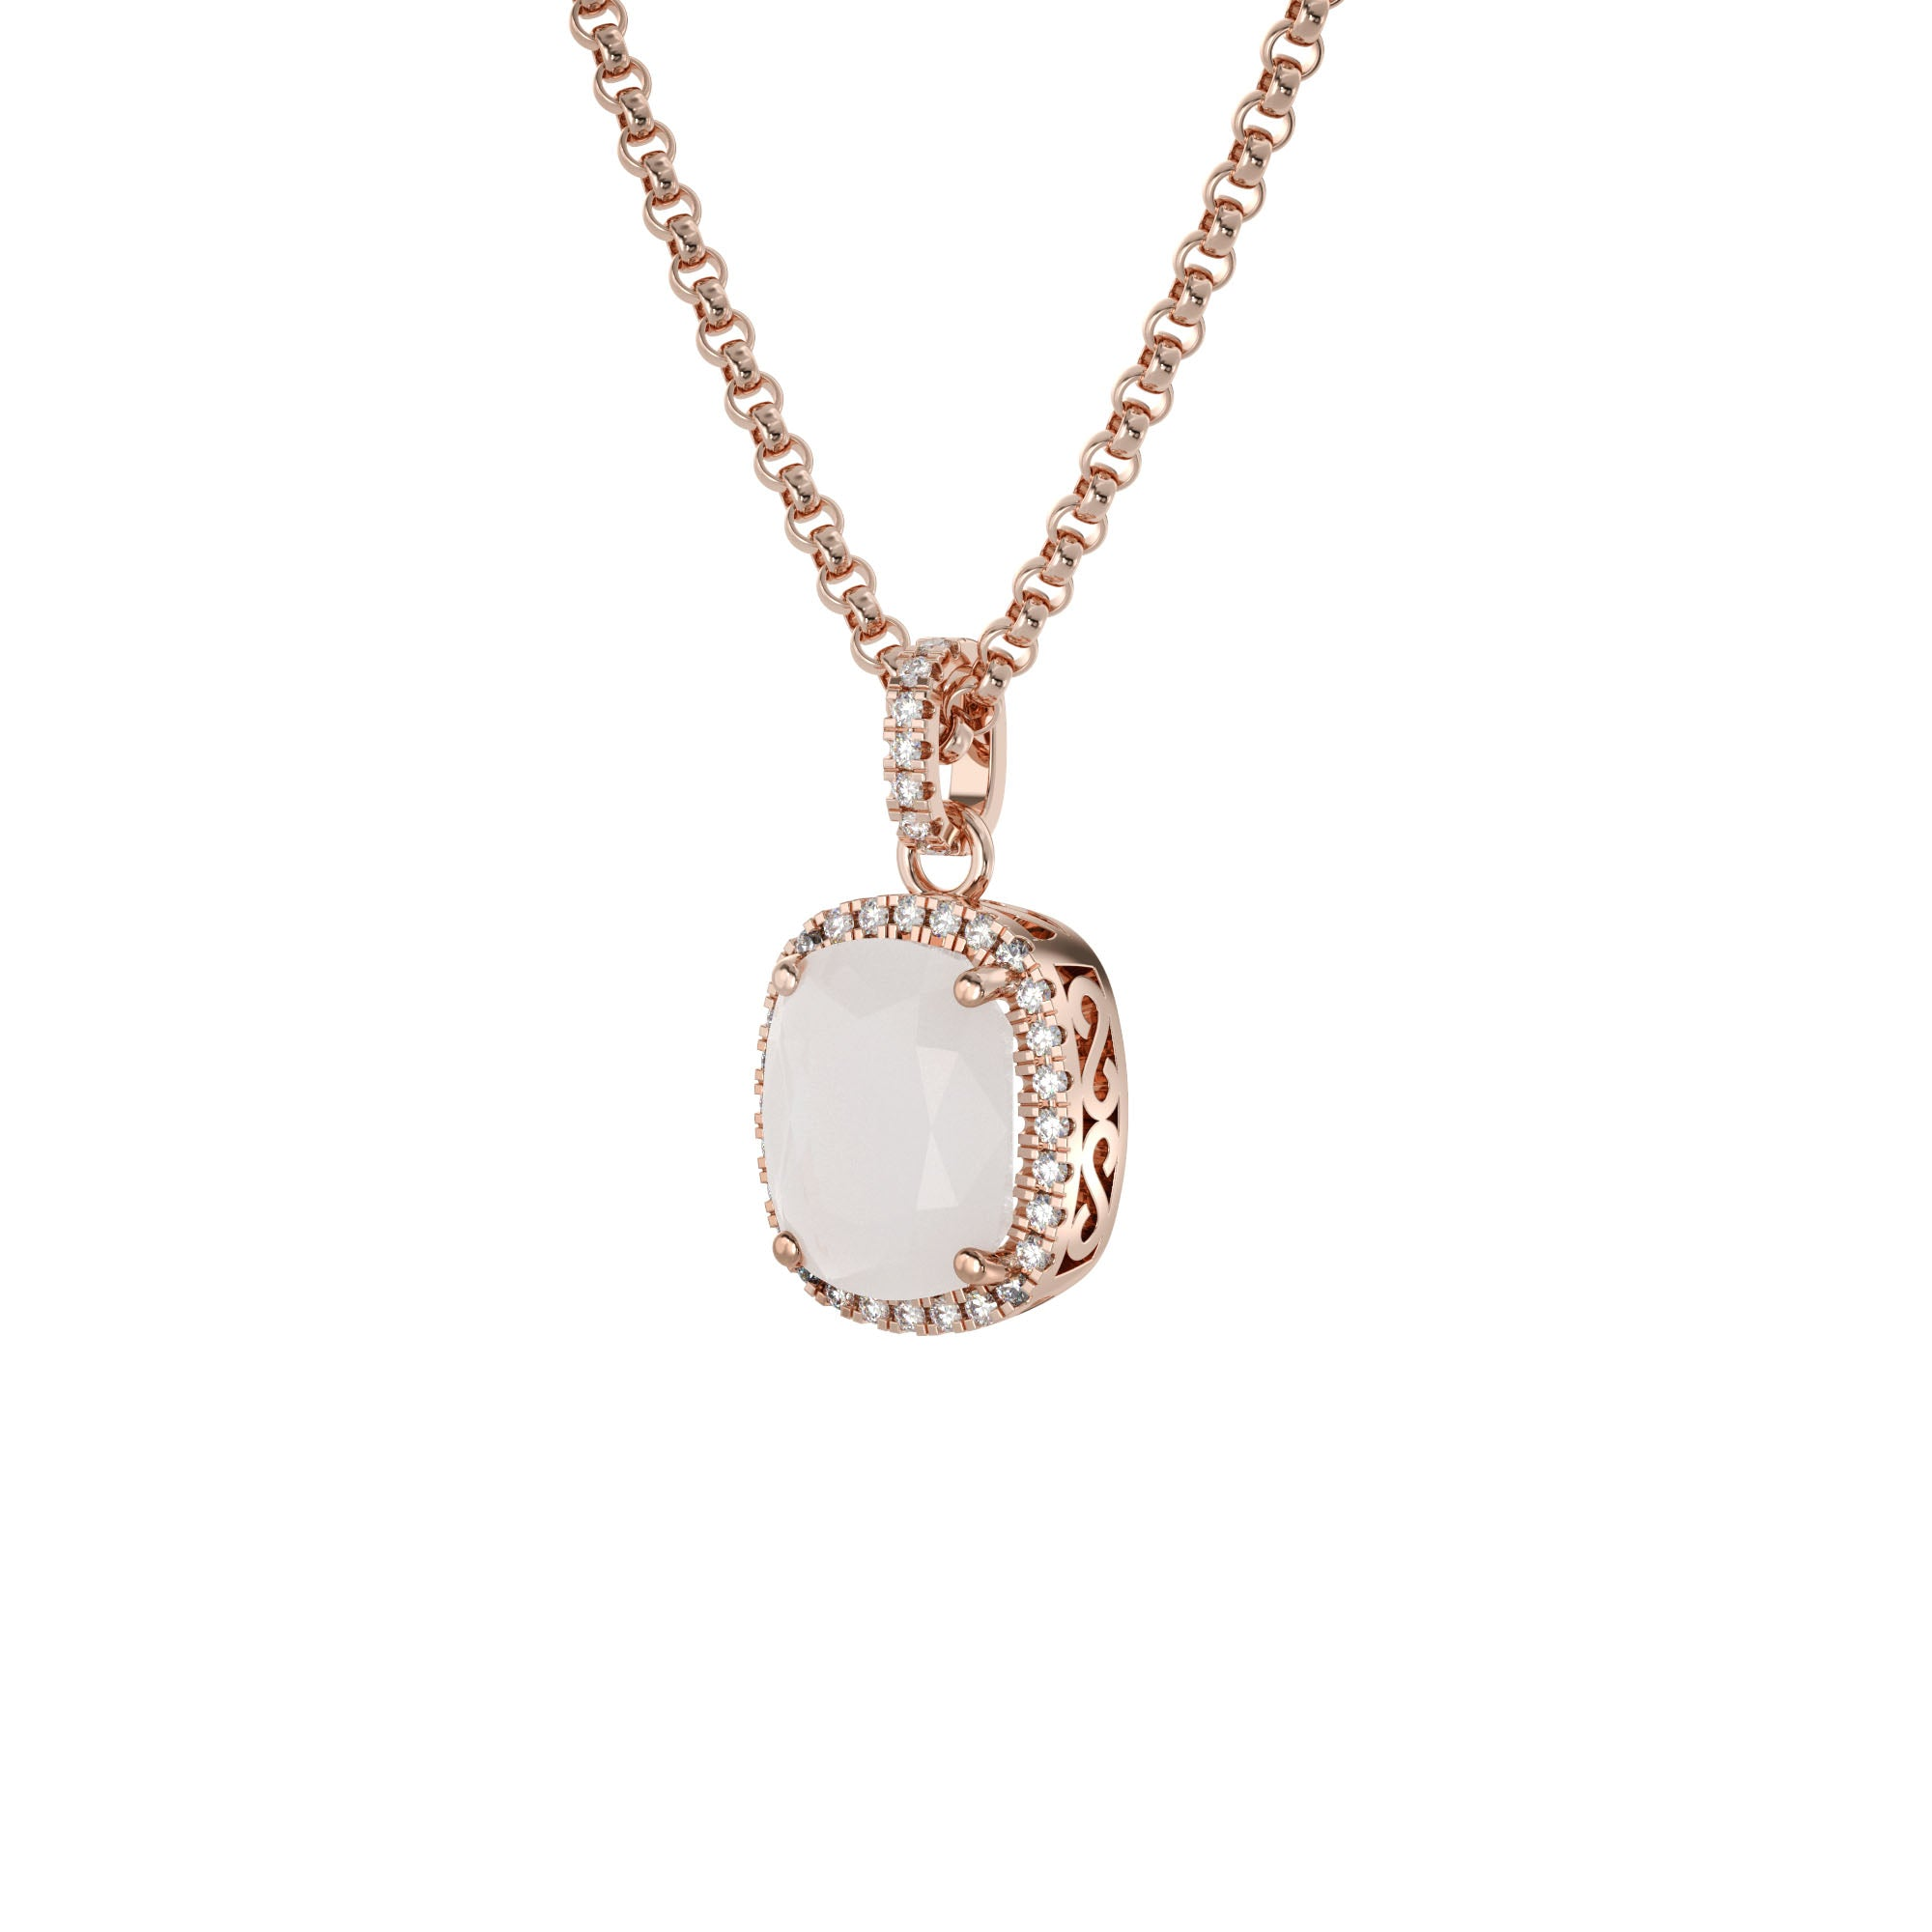 925 Silver Luxe Series Necklace - Laria (Moonstone) - Rose Gold Plated